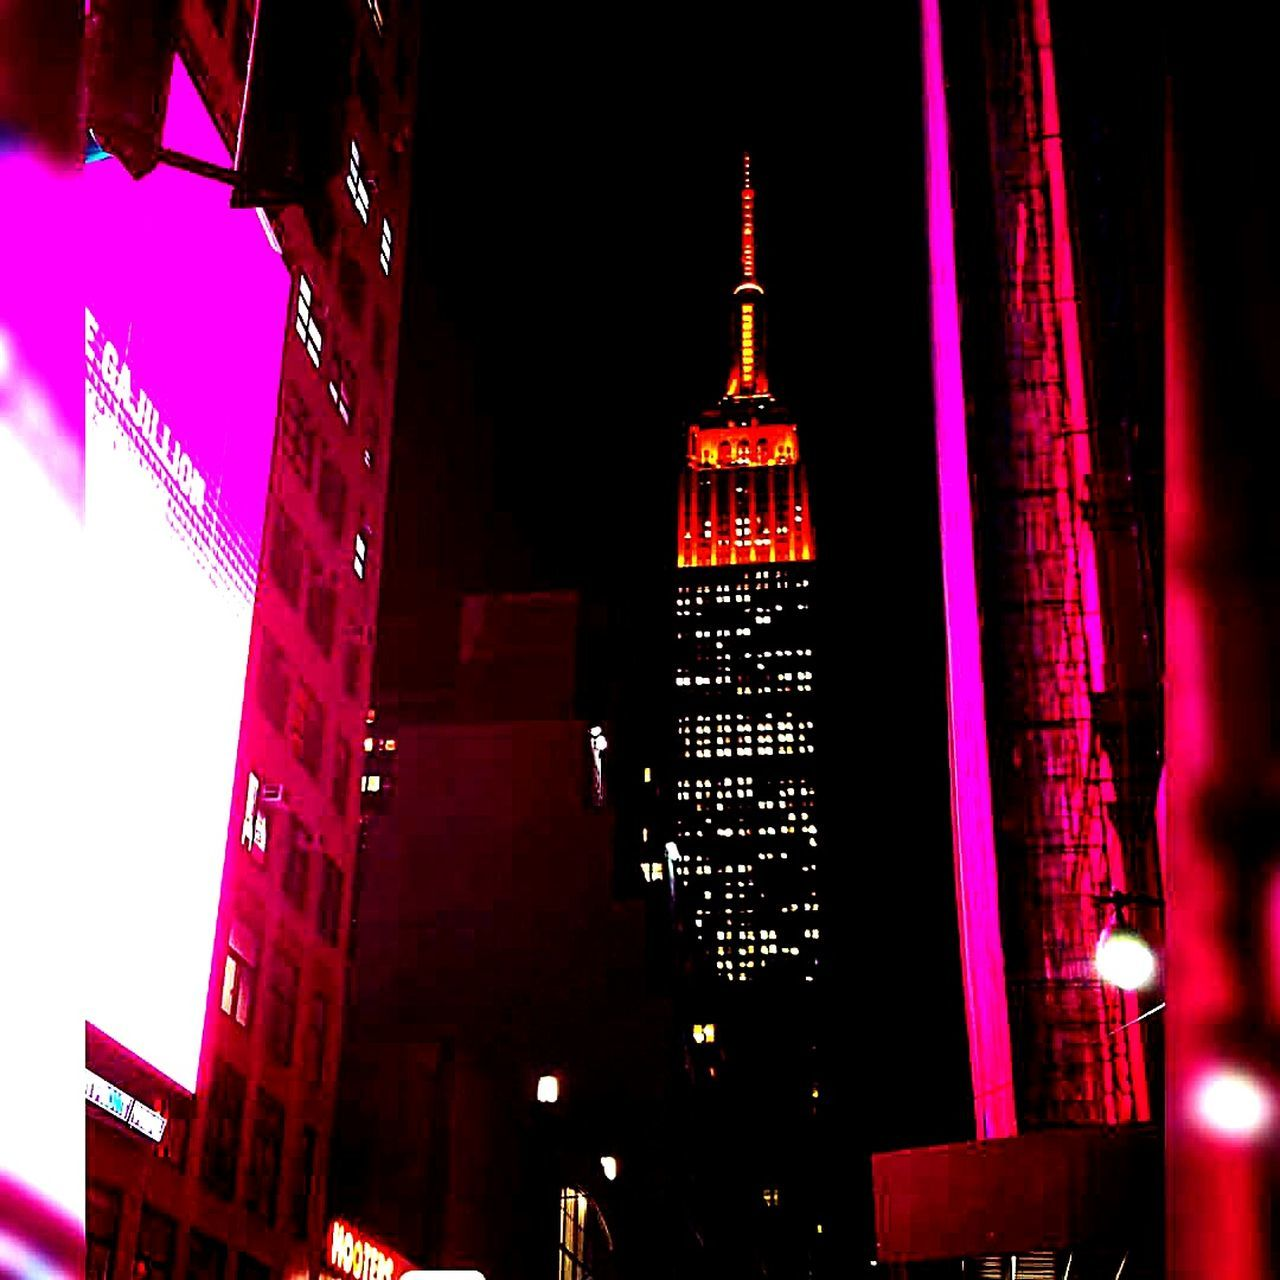 Empire Of Lights Empiretower First Eyeem Photo EyeEmNewHere Nyclife Skyscraper Midtown Manhattan NYC LIFE ♥ Arts Culture And Entertainment Illuminated Outdoors City Night Multi Colored Urban Skyline The Street Photographer - 2017 EyeEm Awards The Great Outdoors 2017 Eyeem Awards The Architect - 2017 EyeEm Awards The Great Outdoors - 2017 EyeEm Awards